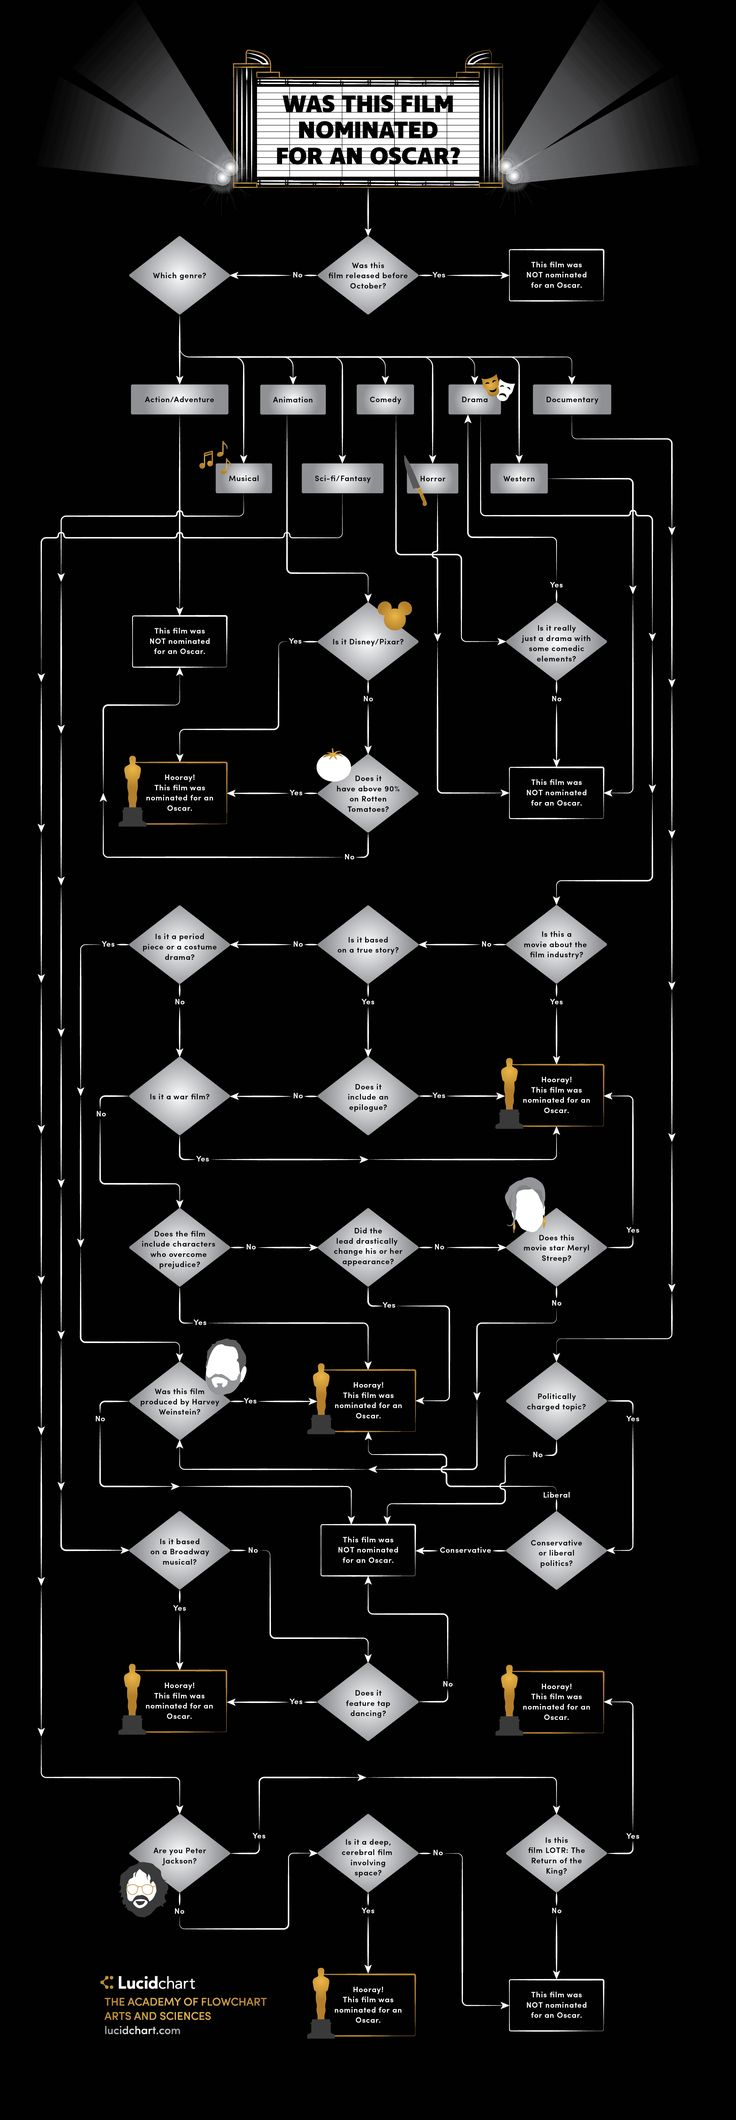 How can you tell if a movie was nominated for an Oscar? It's easier than you think. Is it a movie about the movie industry? Does it star Meryl Streep? Did Harvey Weinstein produce it? Follow this flowchart to have all your Oscar questions answered!